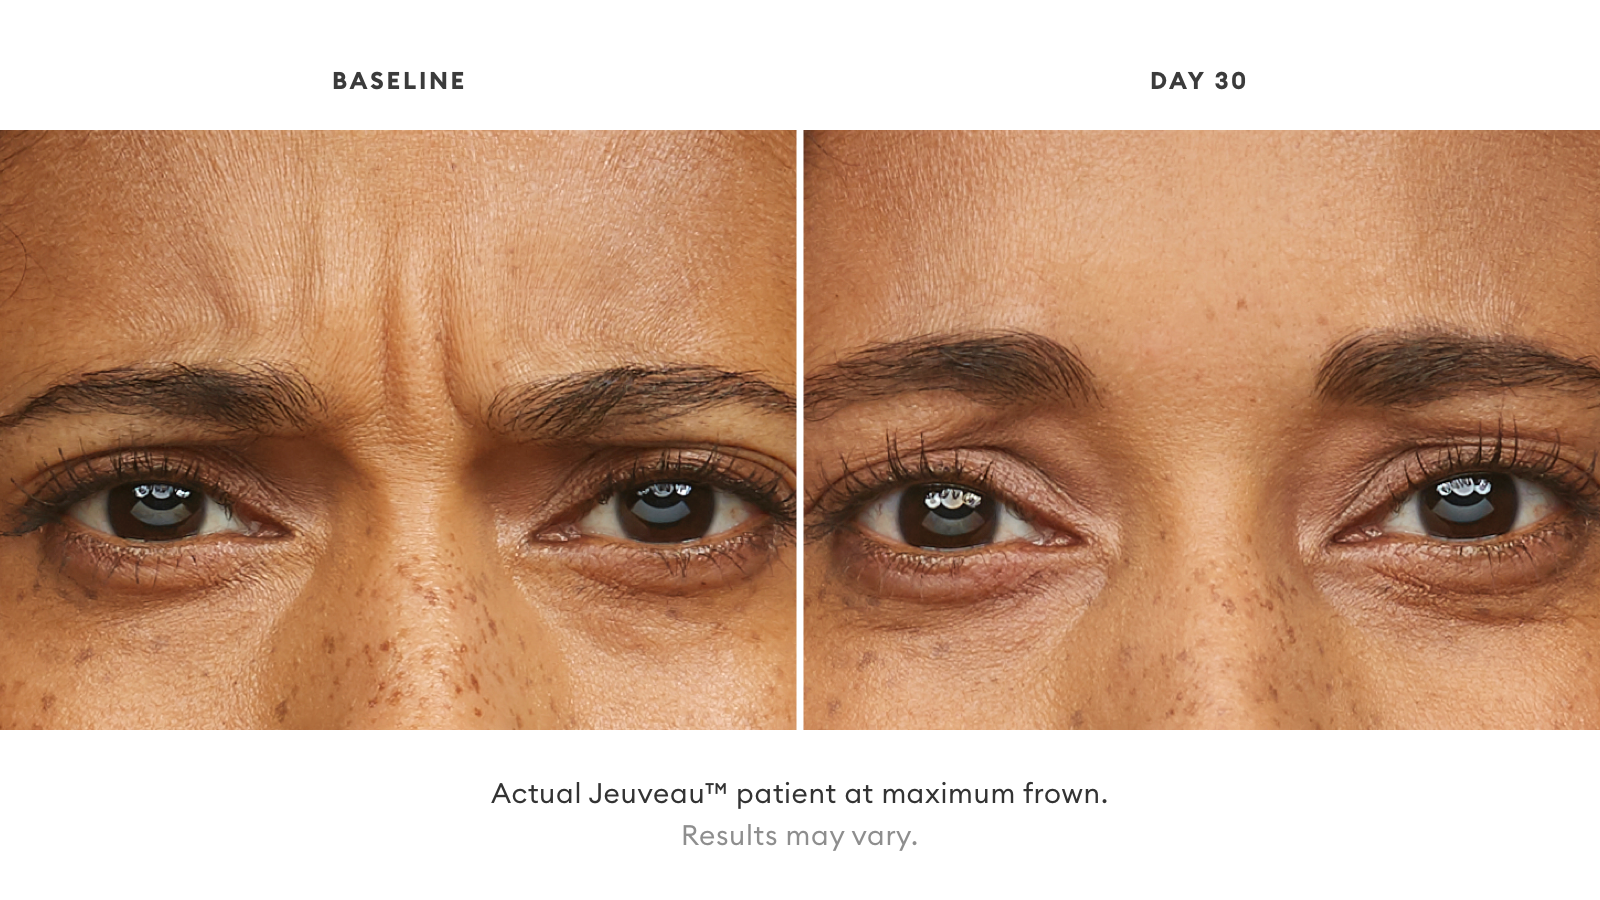 Jeuveau patient close of up eyes before and after 30 days